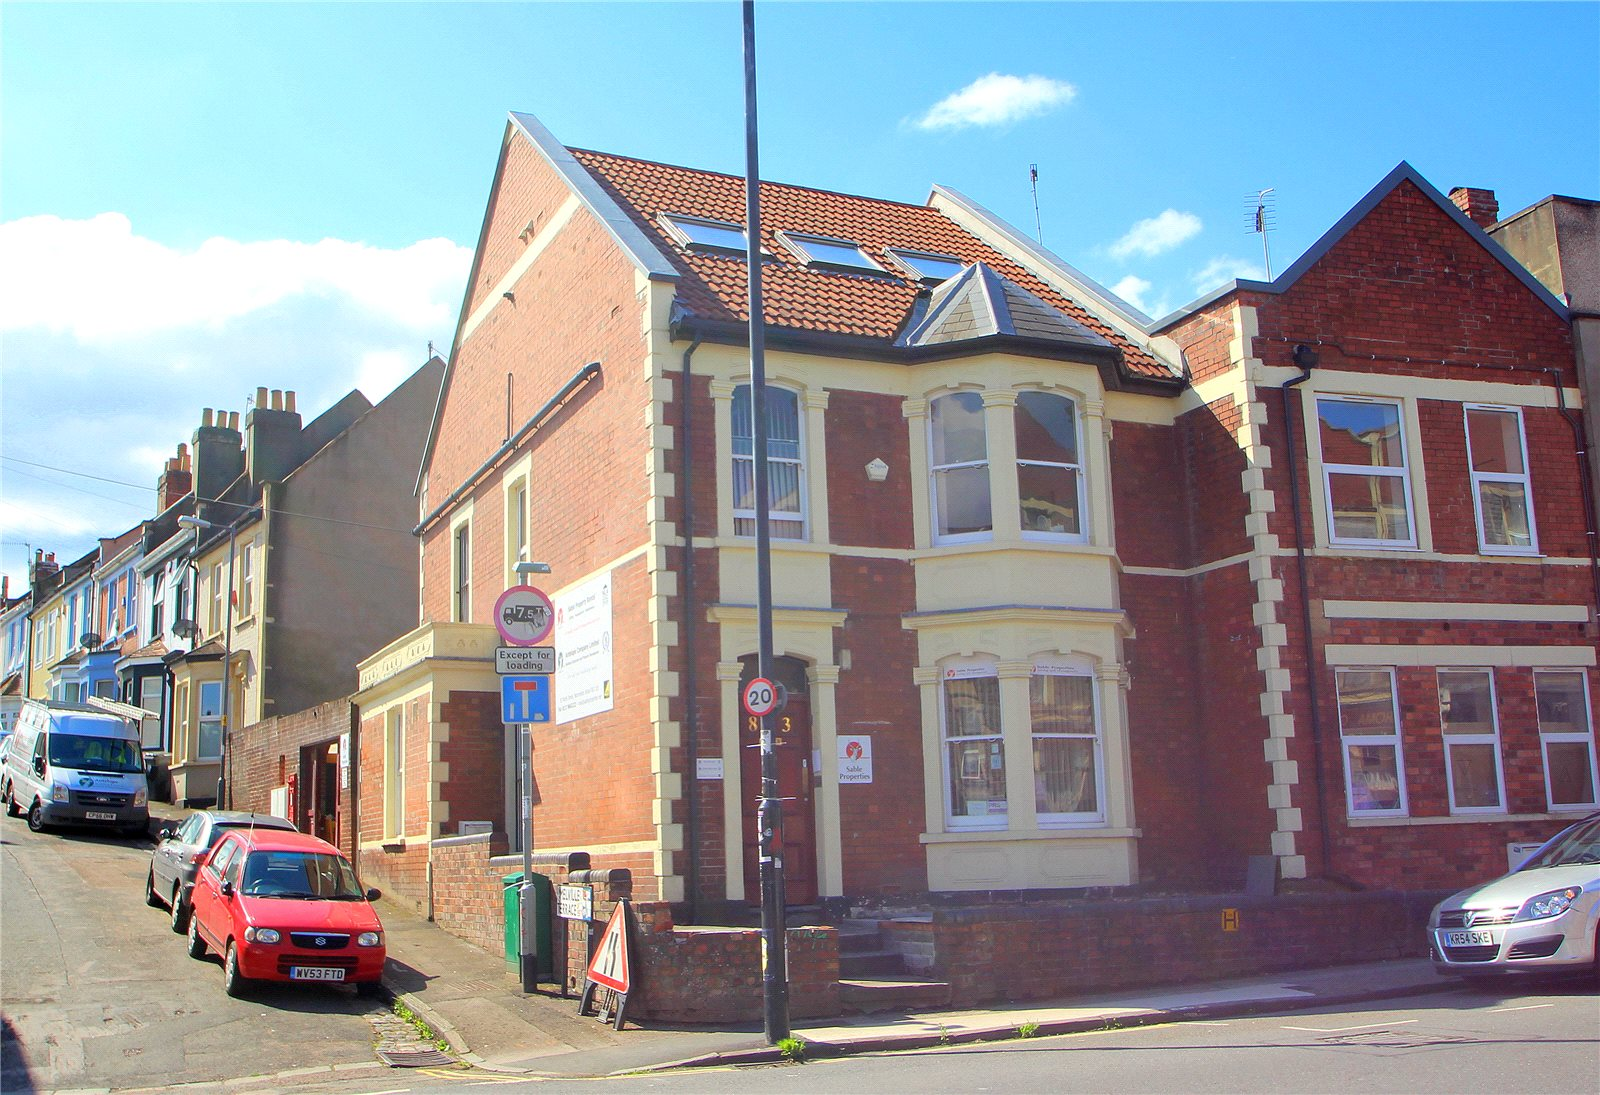 Property for rent in North Street Bedminster Bristol BS3